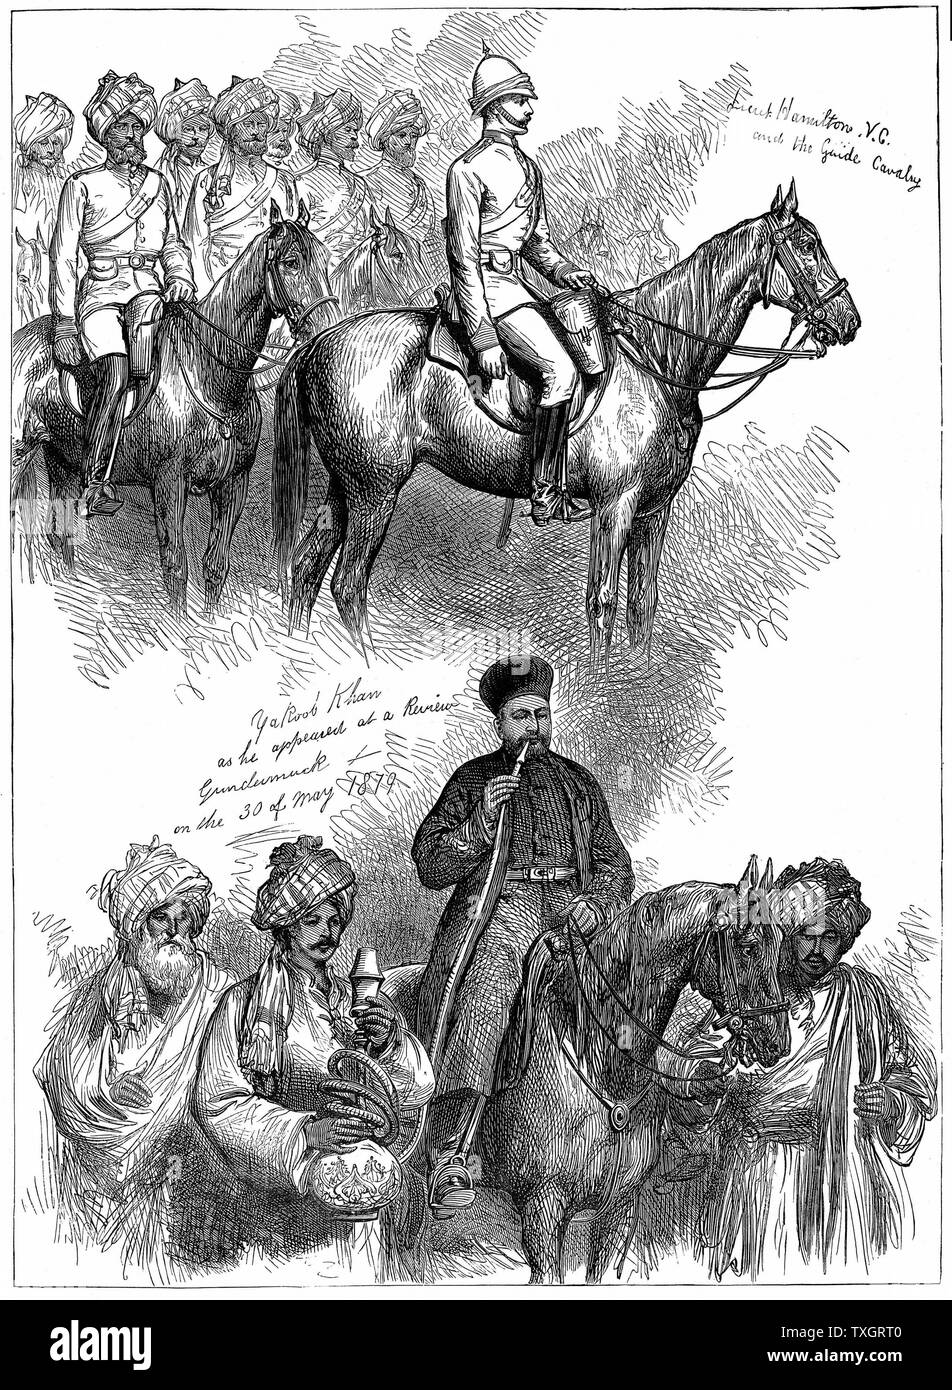 Second Anglo-Afghan War (1878-1880): Yakub (Yakoob) Khan, ruler of Afghanistan, at a review at Gundamuck, 30 May 1879, after signing of Treaty of Gundamuck on 26 May. At top, Lieut Hamilton rides at the head of a native regiment of Guides.  1879 Wood engraving Stock Photo